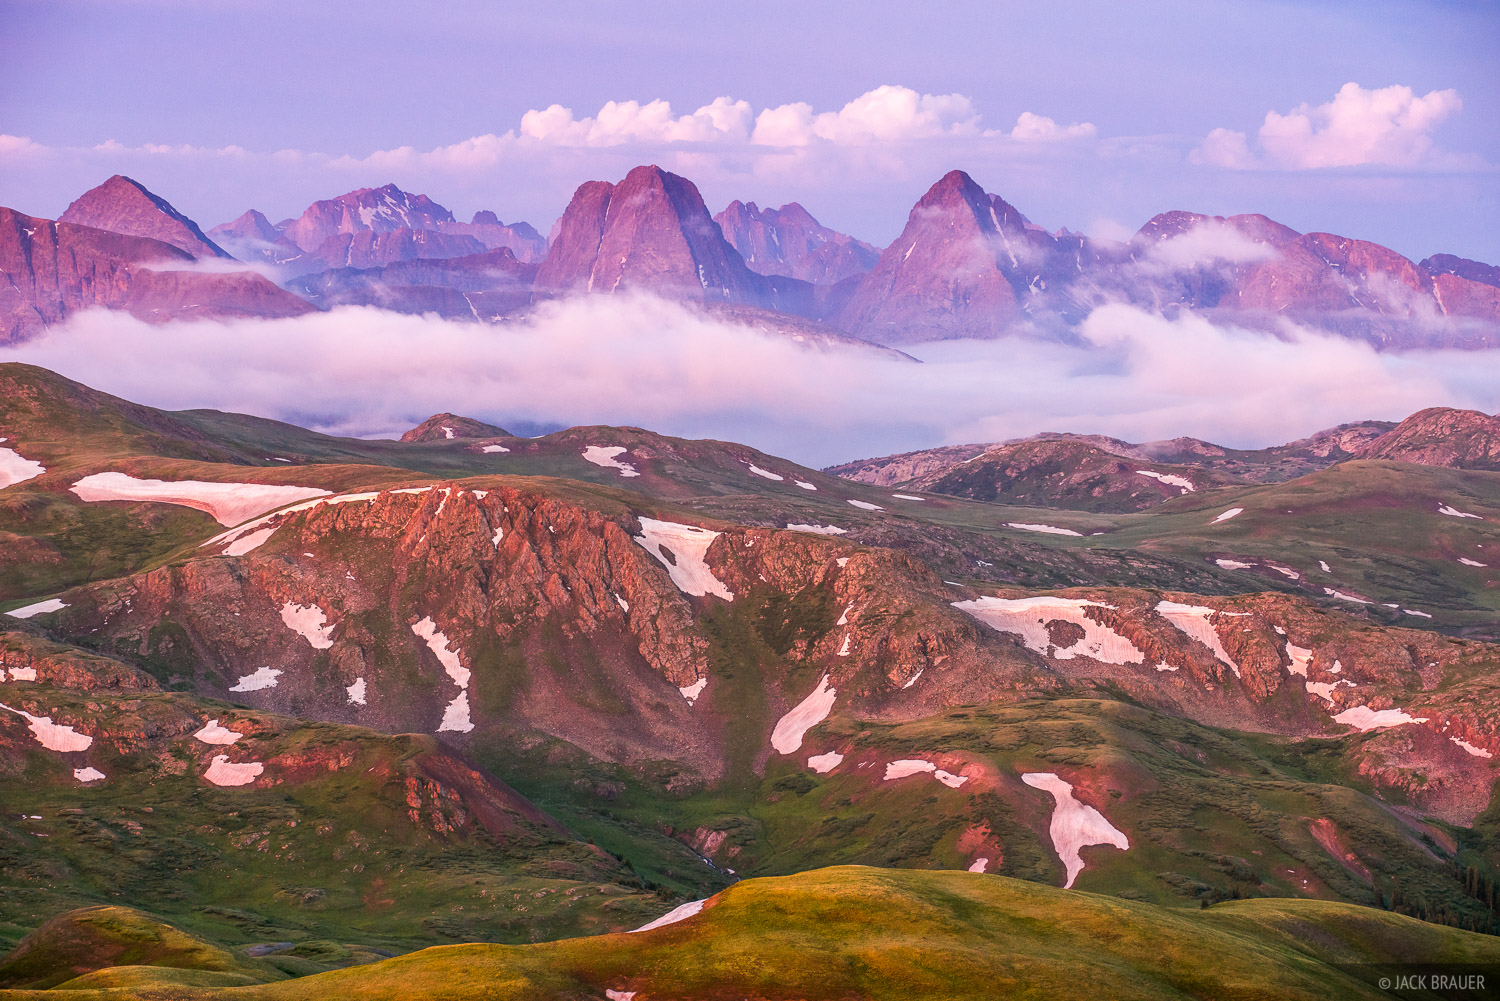 Colorado,Grenadier Range,San Juan Mountains,Stony Pass,Weminuche Wilderness, Vestal Peak, Arrow Peak, photo